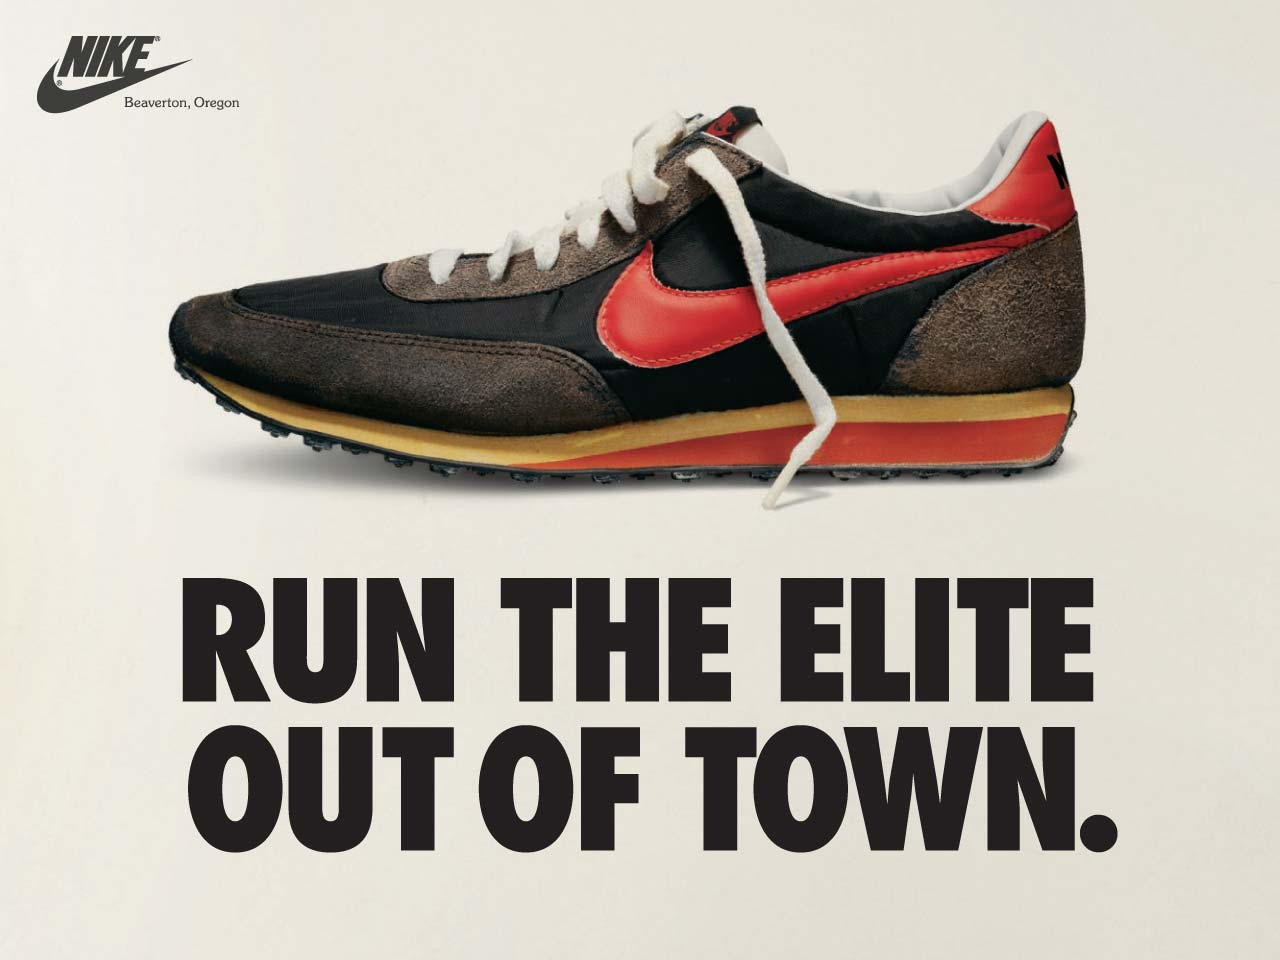 Vintage Nike Running Wallpapers   Nikeblogcom 1280x960